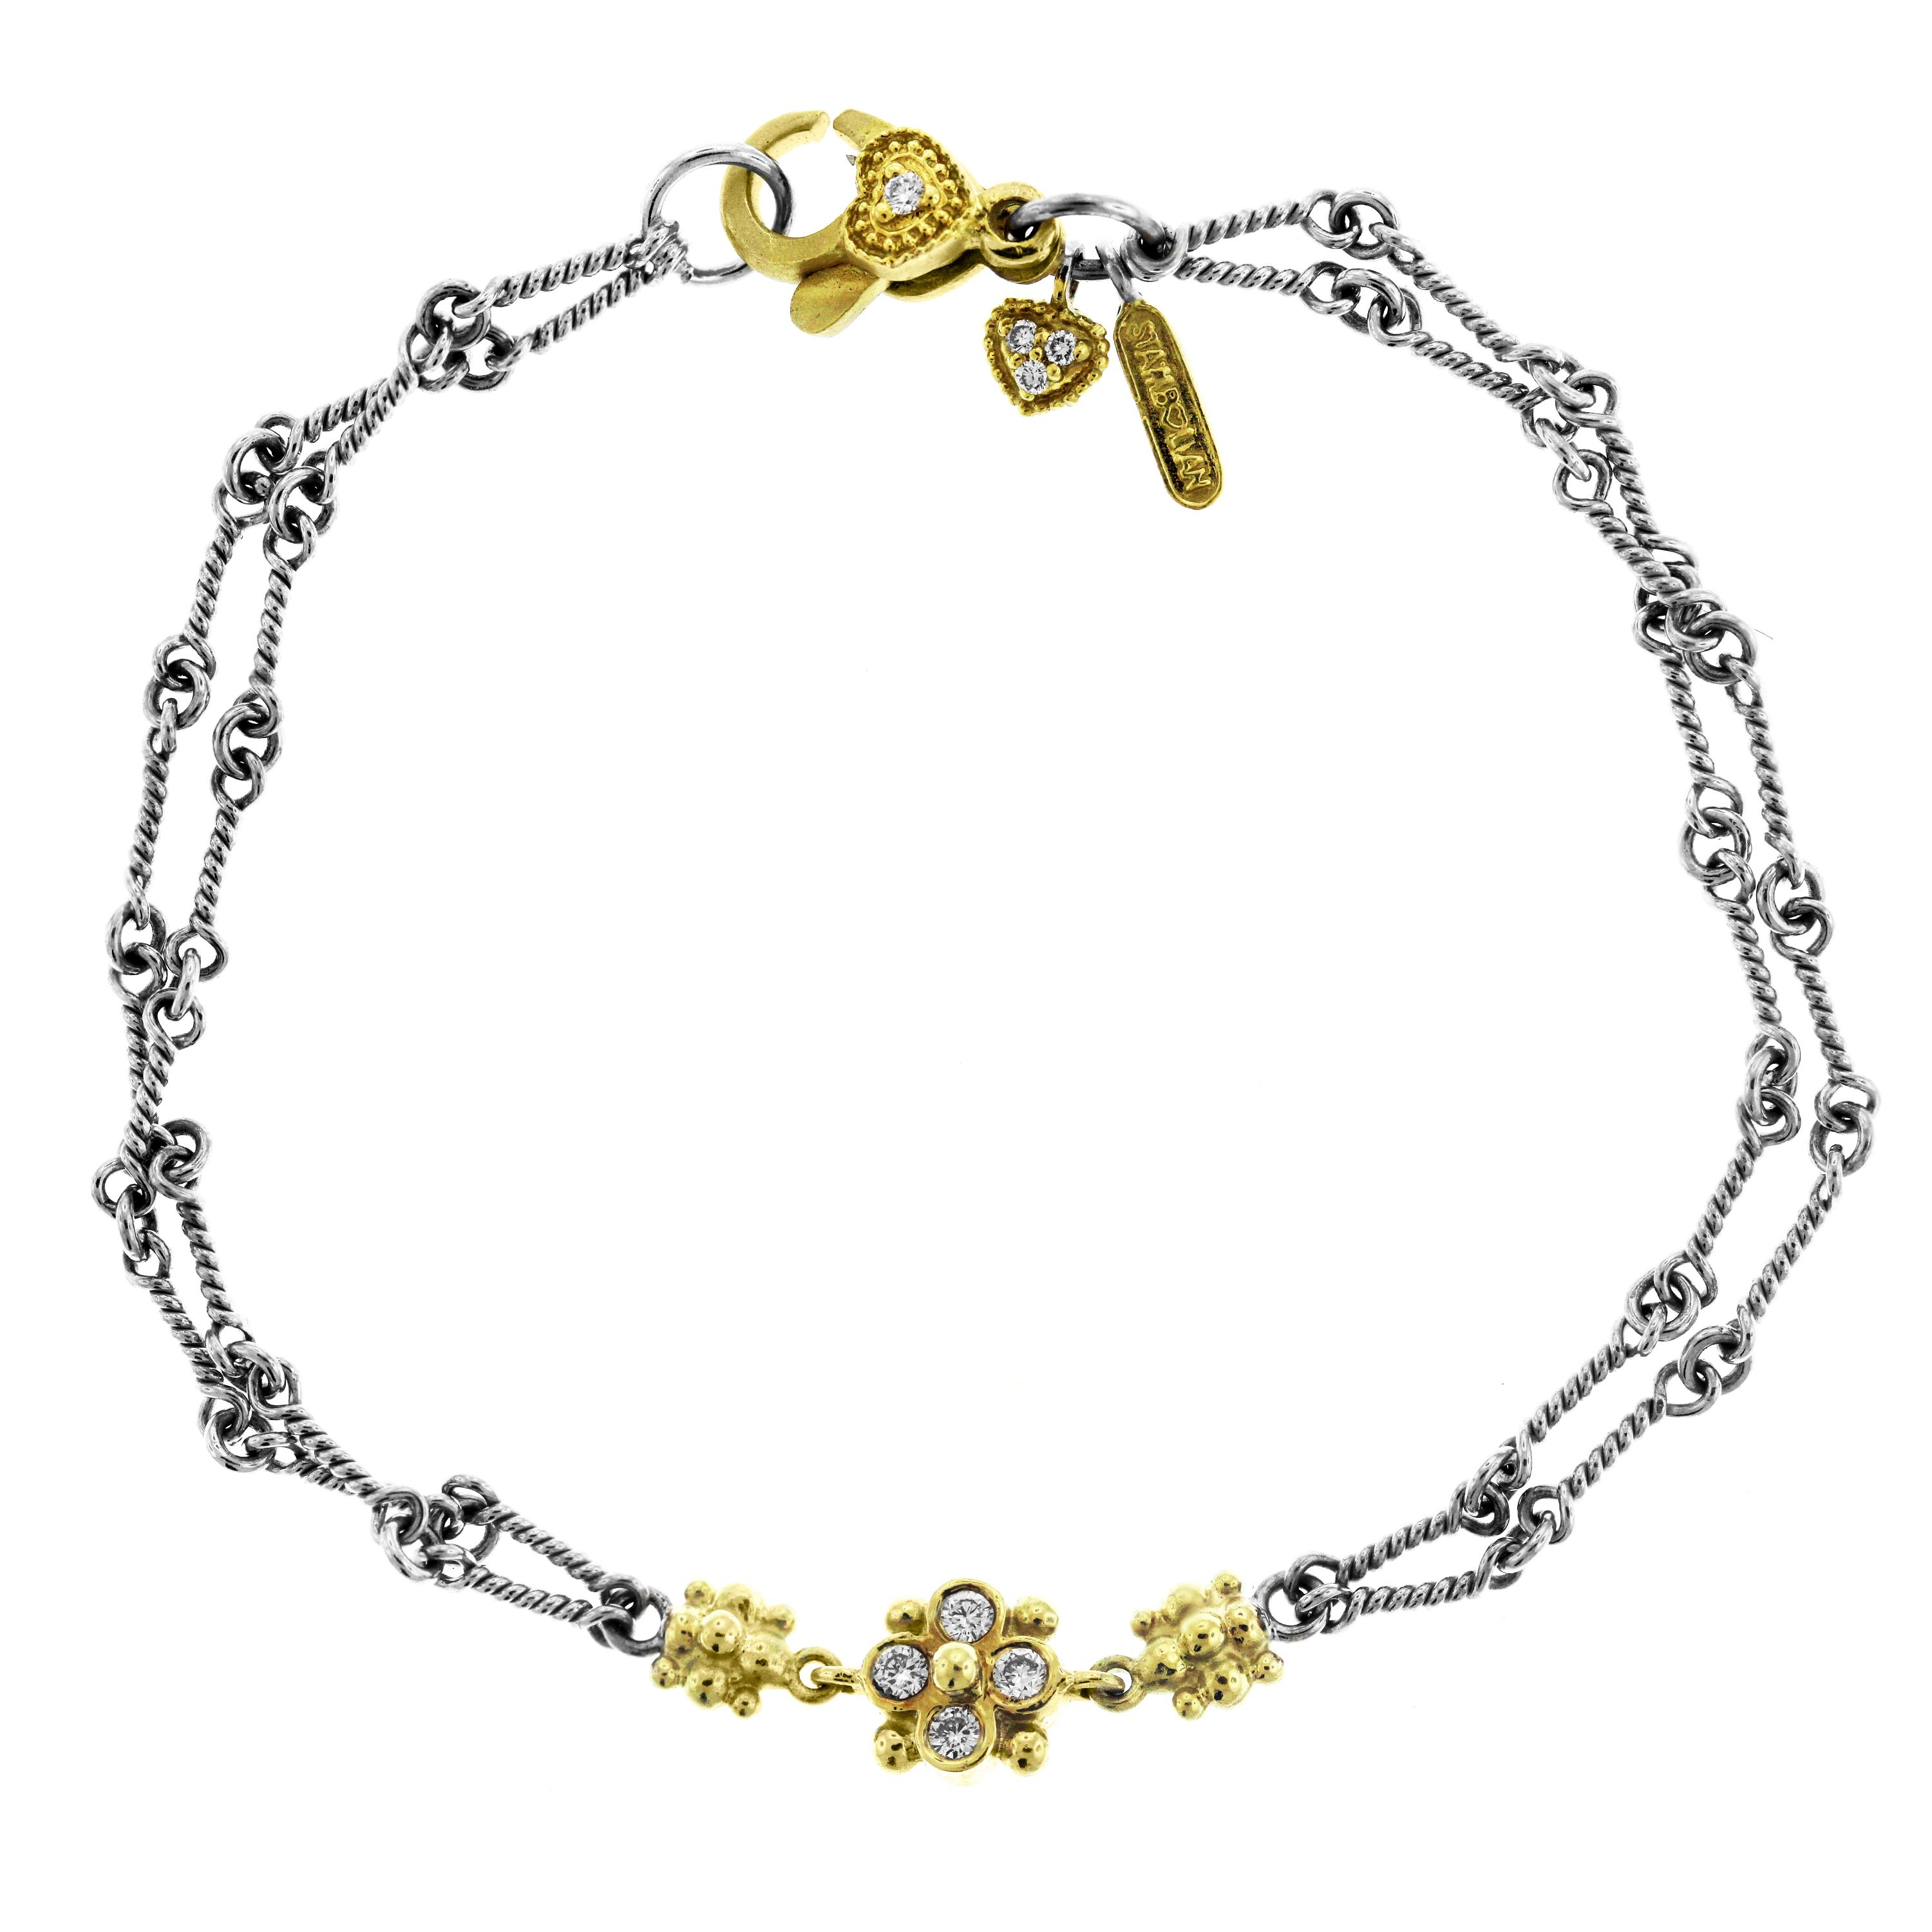 3000x3000 Two Tone Yellow White Gold And Diamond Chain Bracelet With Flower